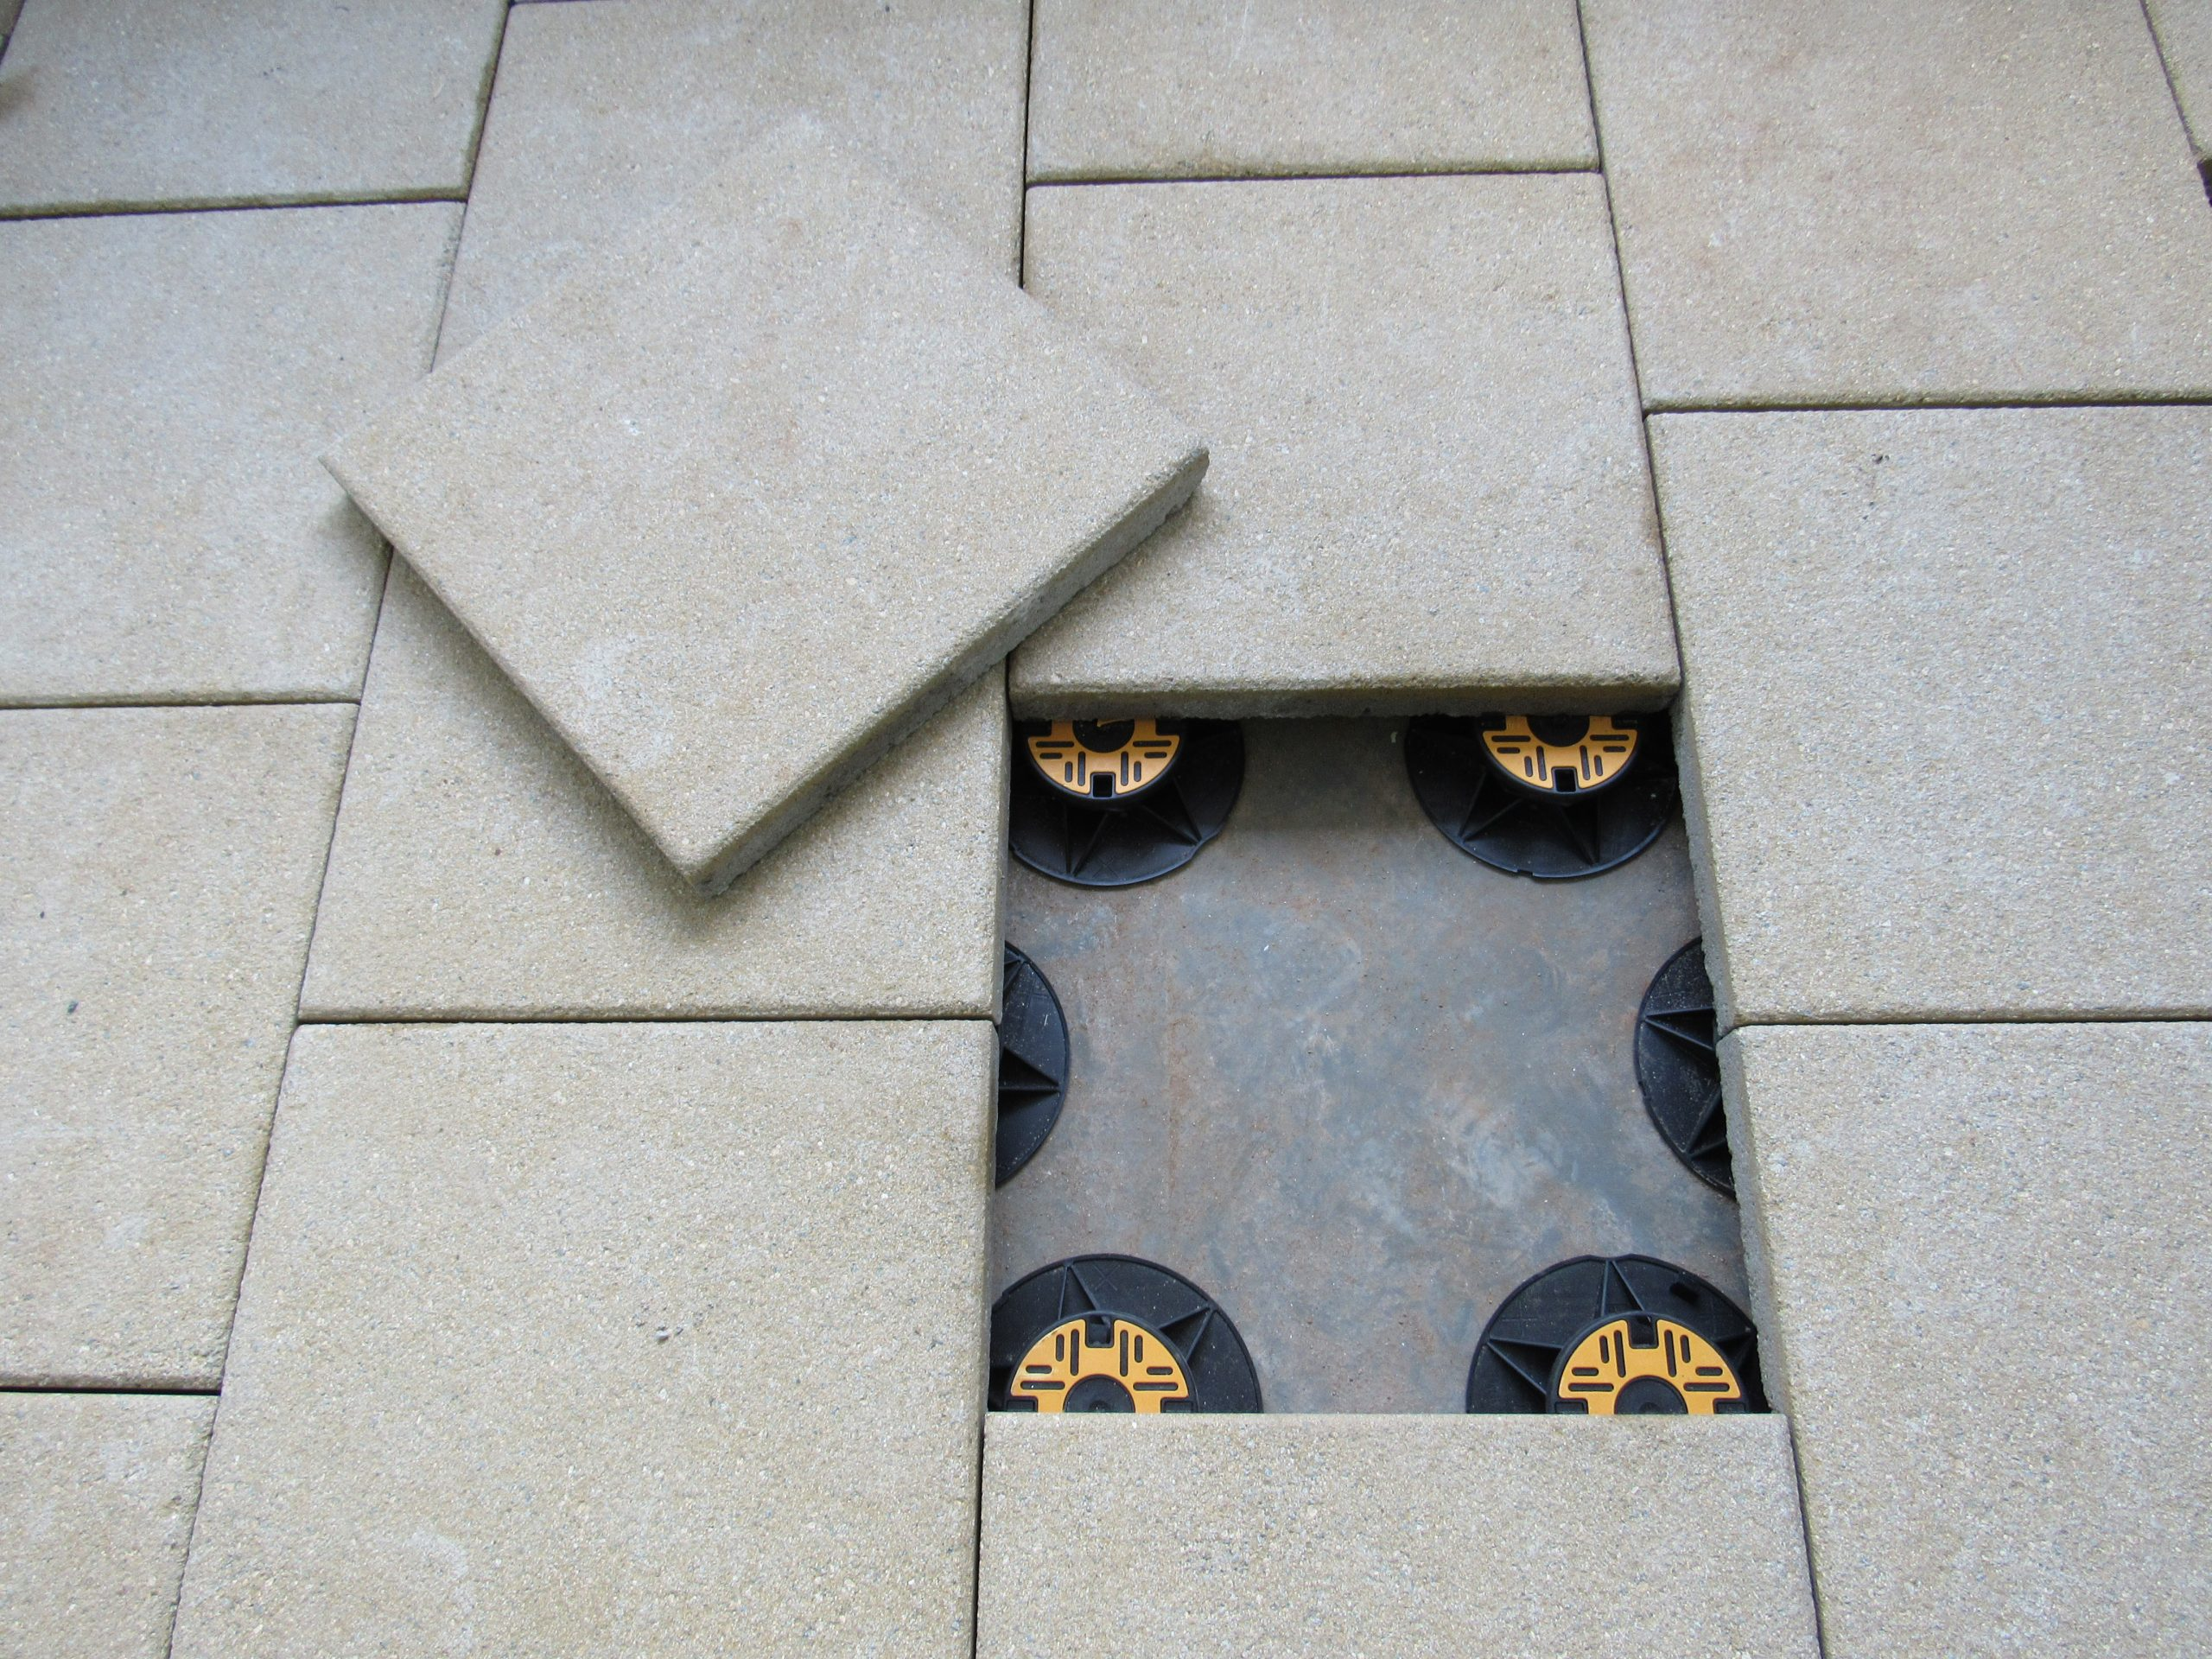 Universal pedestals for paving and decking - supporting paving slabs staggered pattern 1